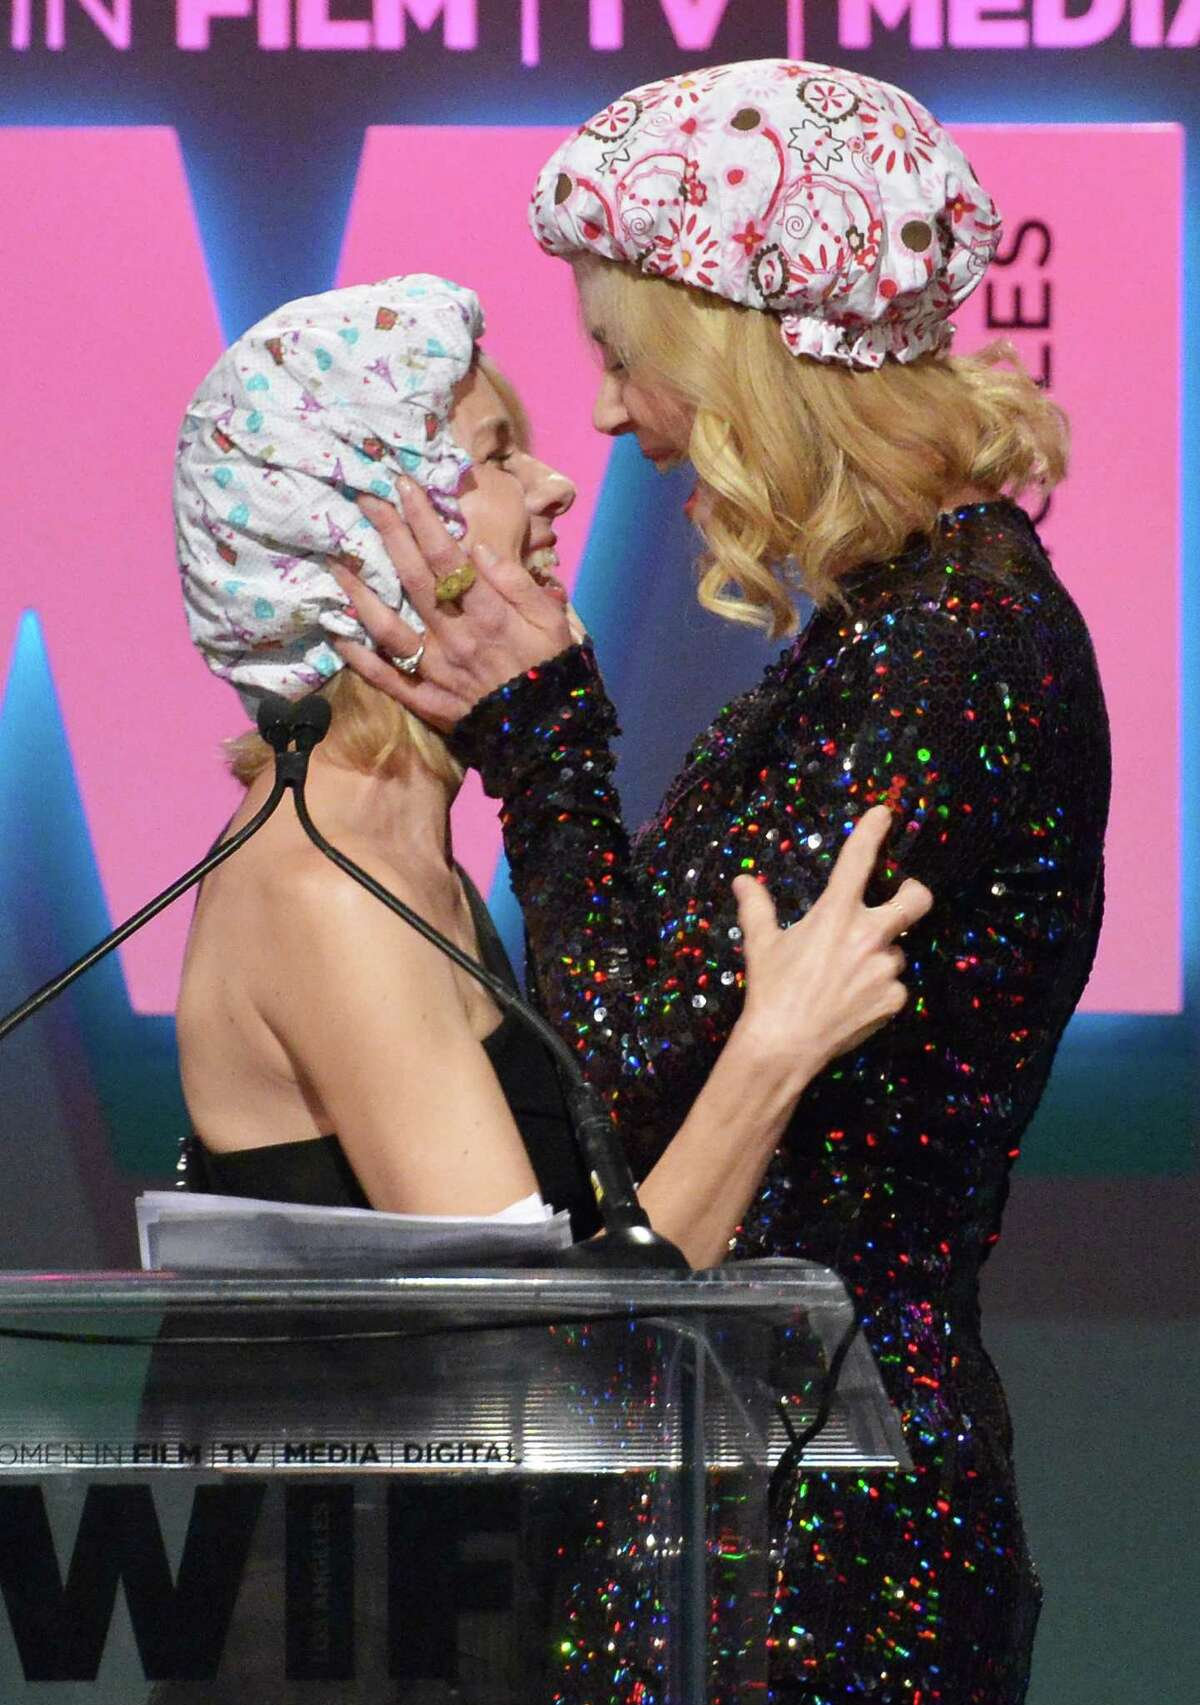 Actress Naomi Watts (L) and honoree Nicole Kidman, recipient of The Crystal Award for Excellence in Film, kiss onstage during the Women In Film 2015 Crystal + Lucy Awards Presented by Max Mara, BMW of North America, and Tiffany & Co. at the Hyatt Regency Century Plaza on June 16, 2015 in Century City, California.